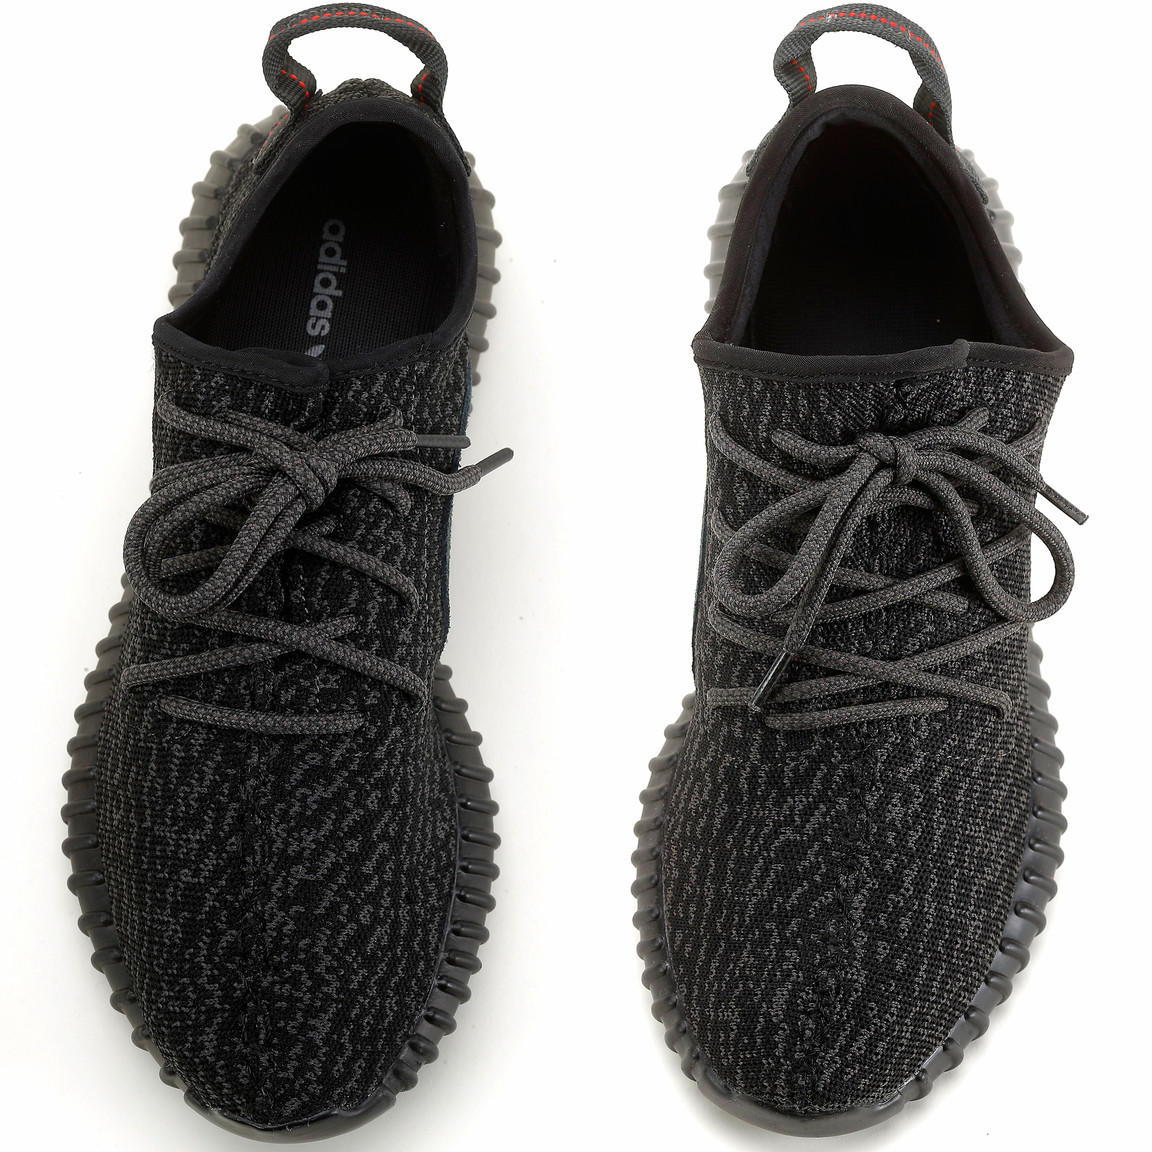 4f135d8529652 Counterfeit Yeezys and the booming sneaker black market - Los ...